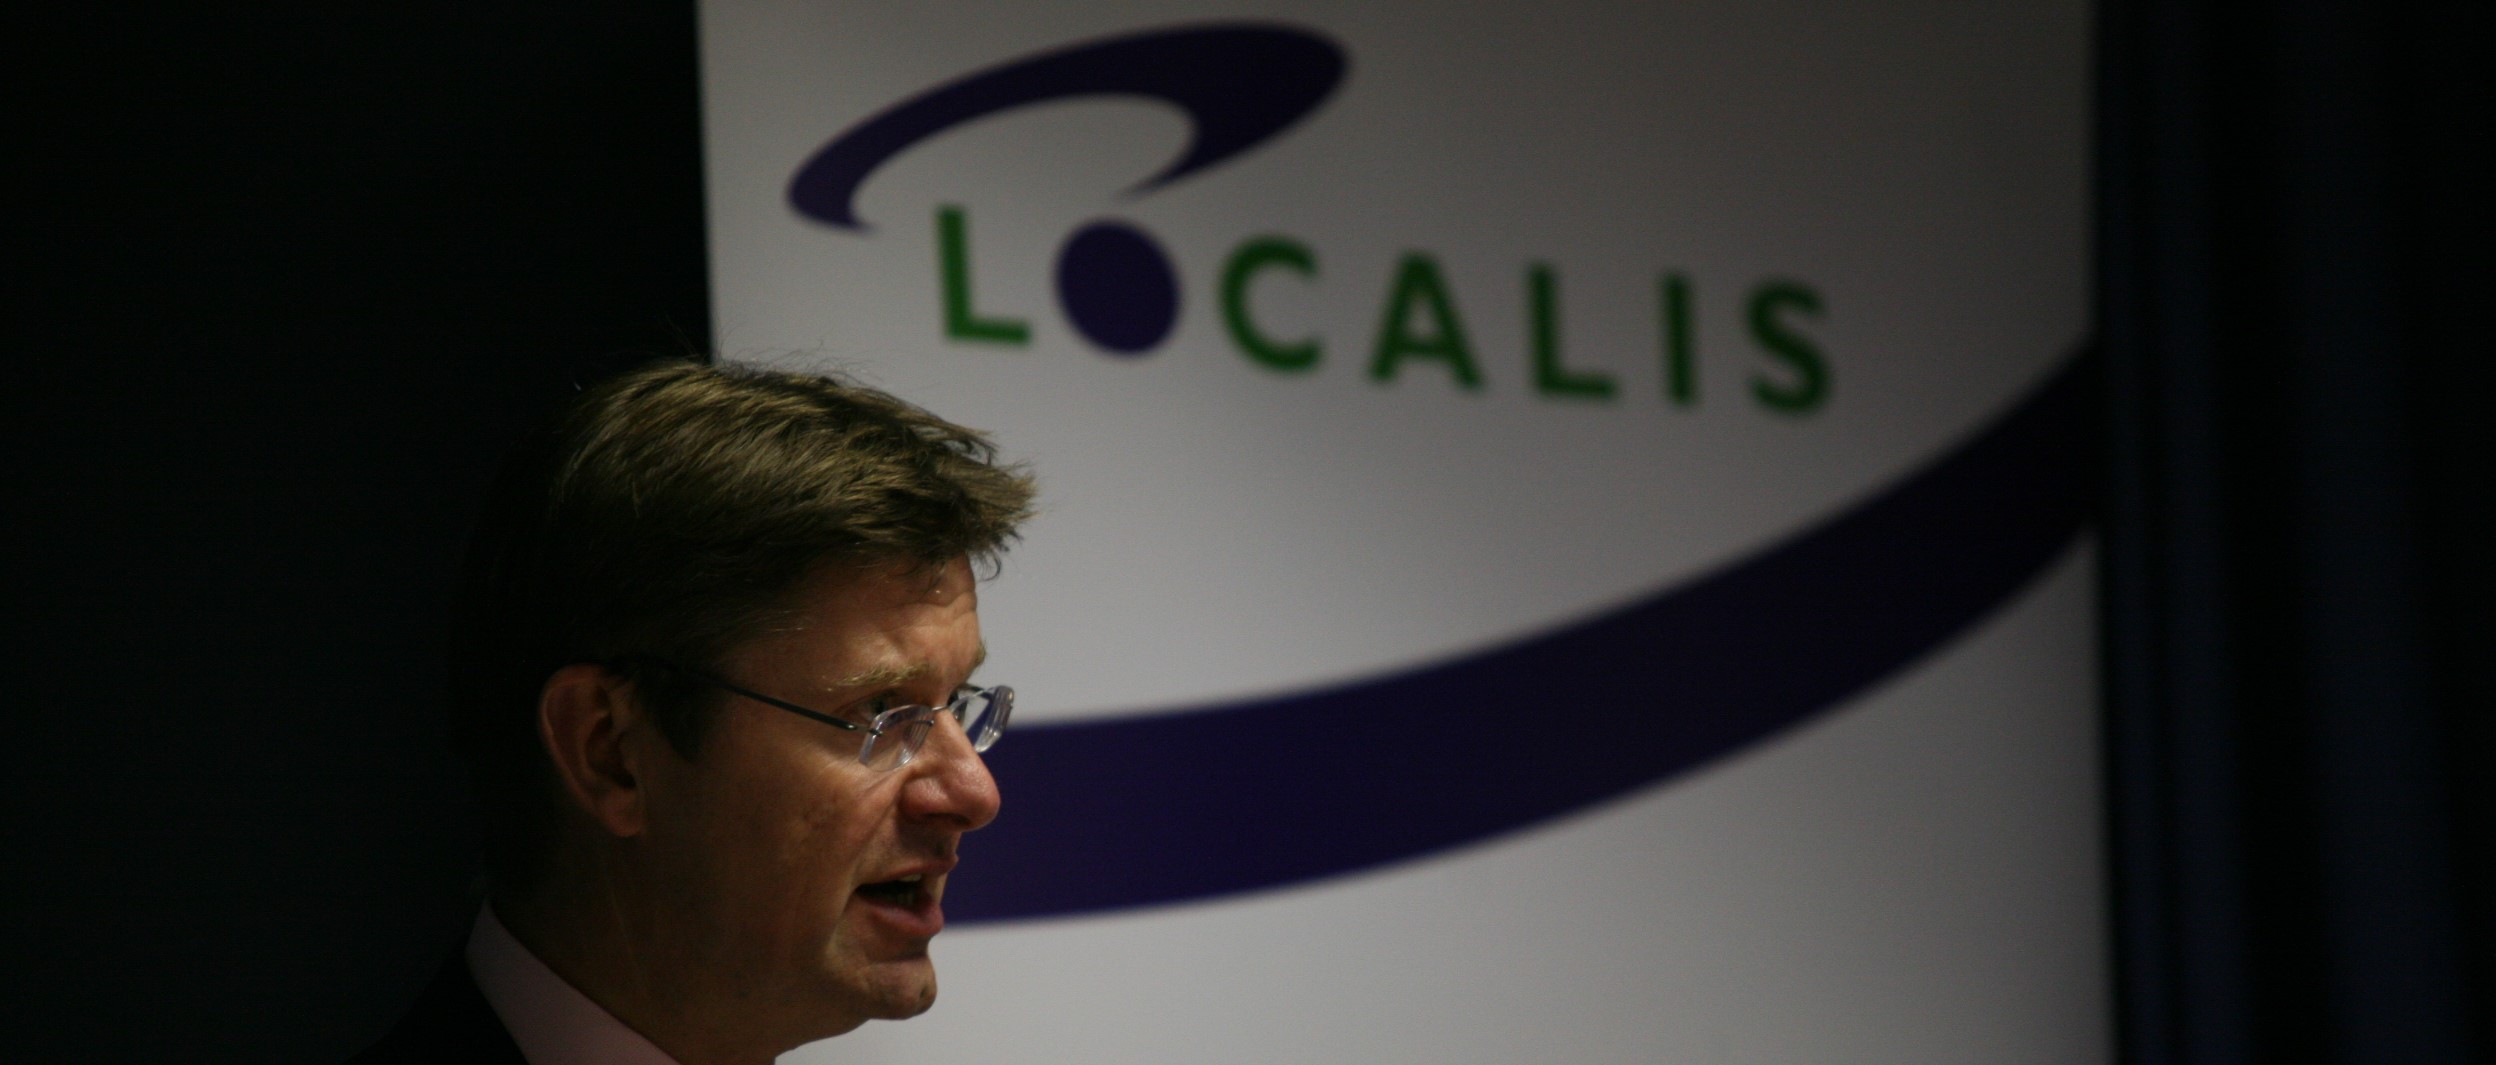 About Localis